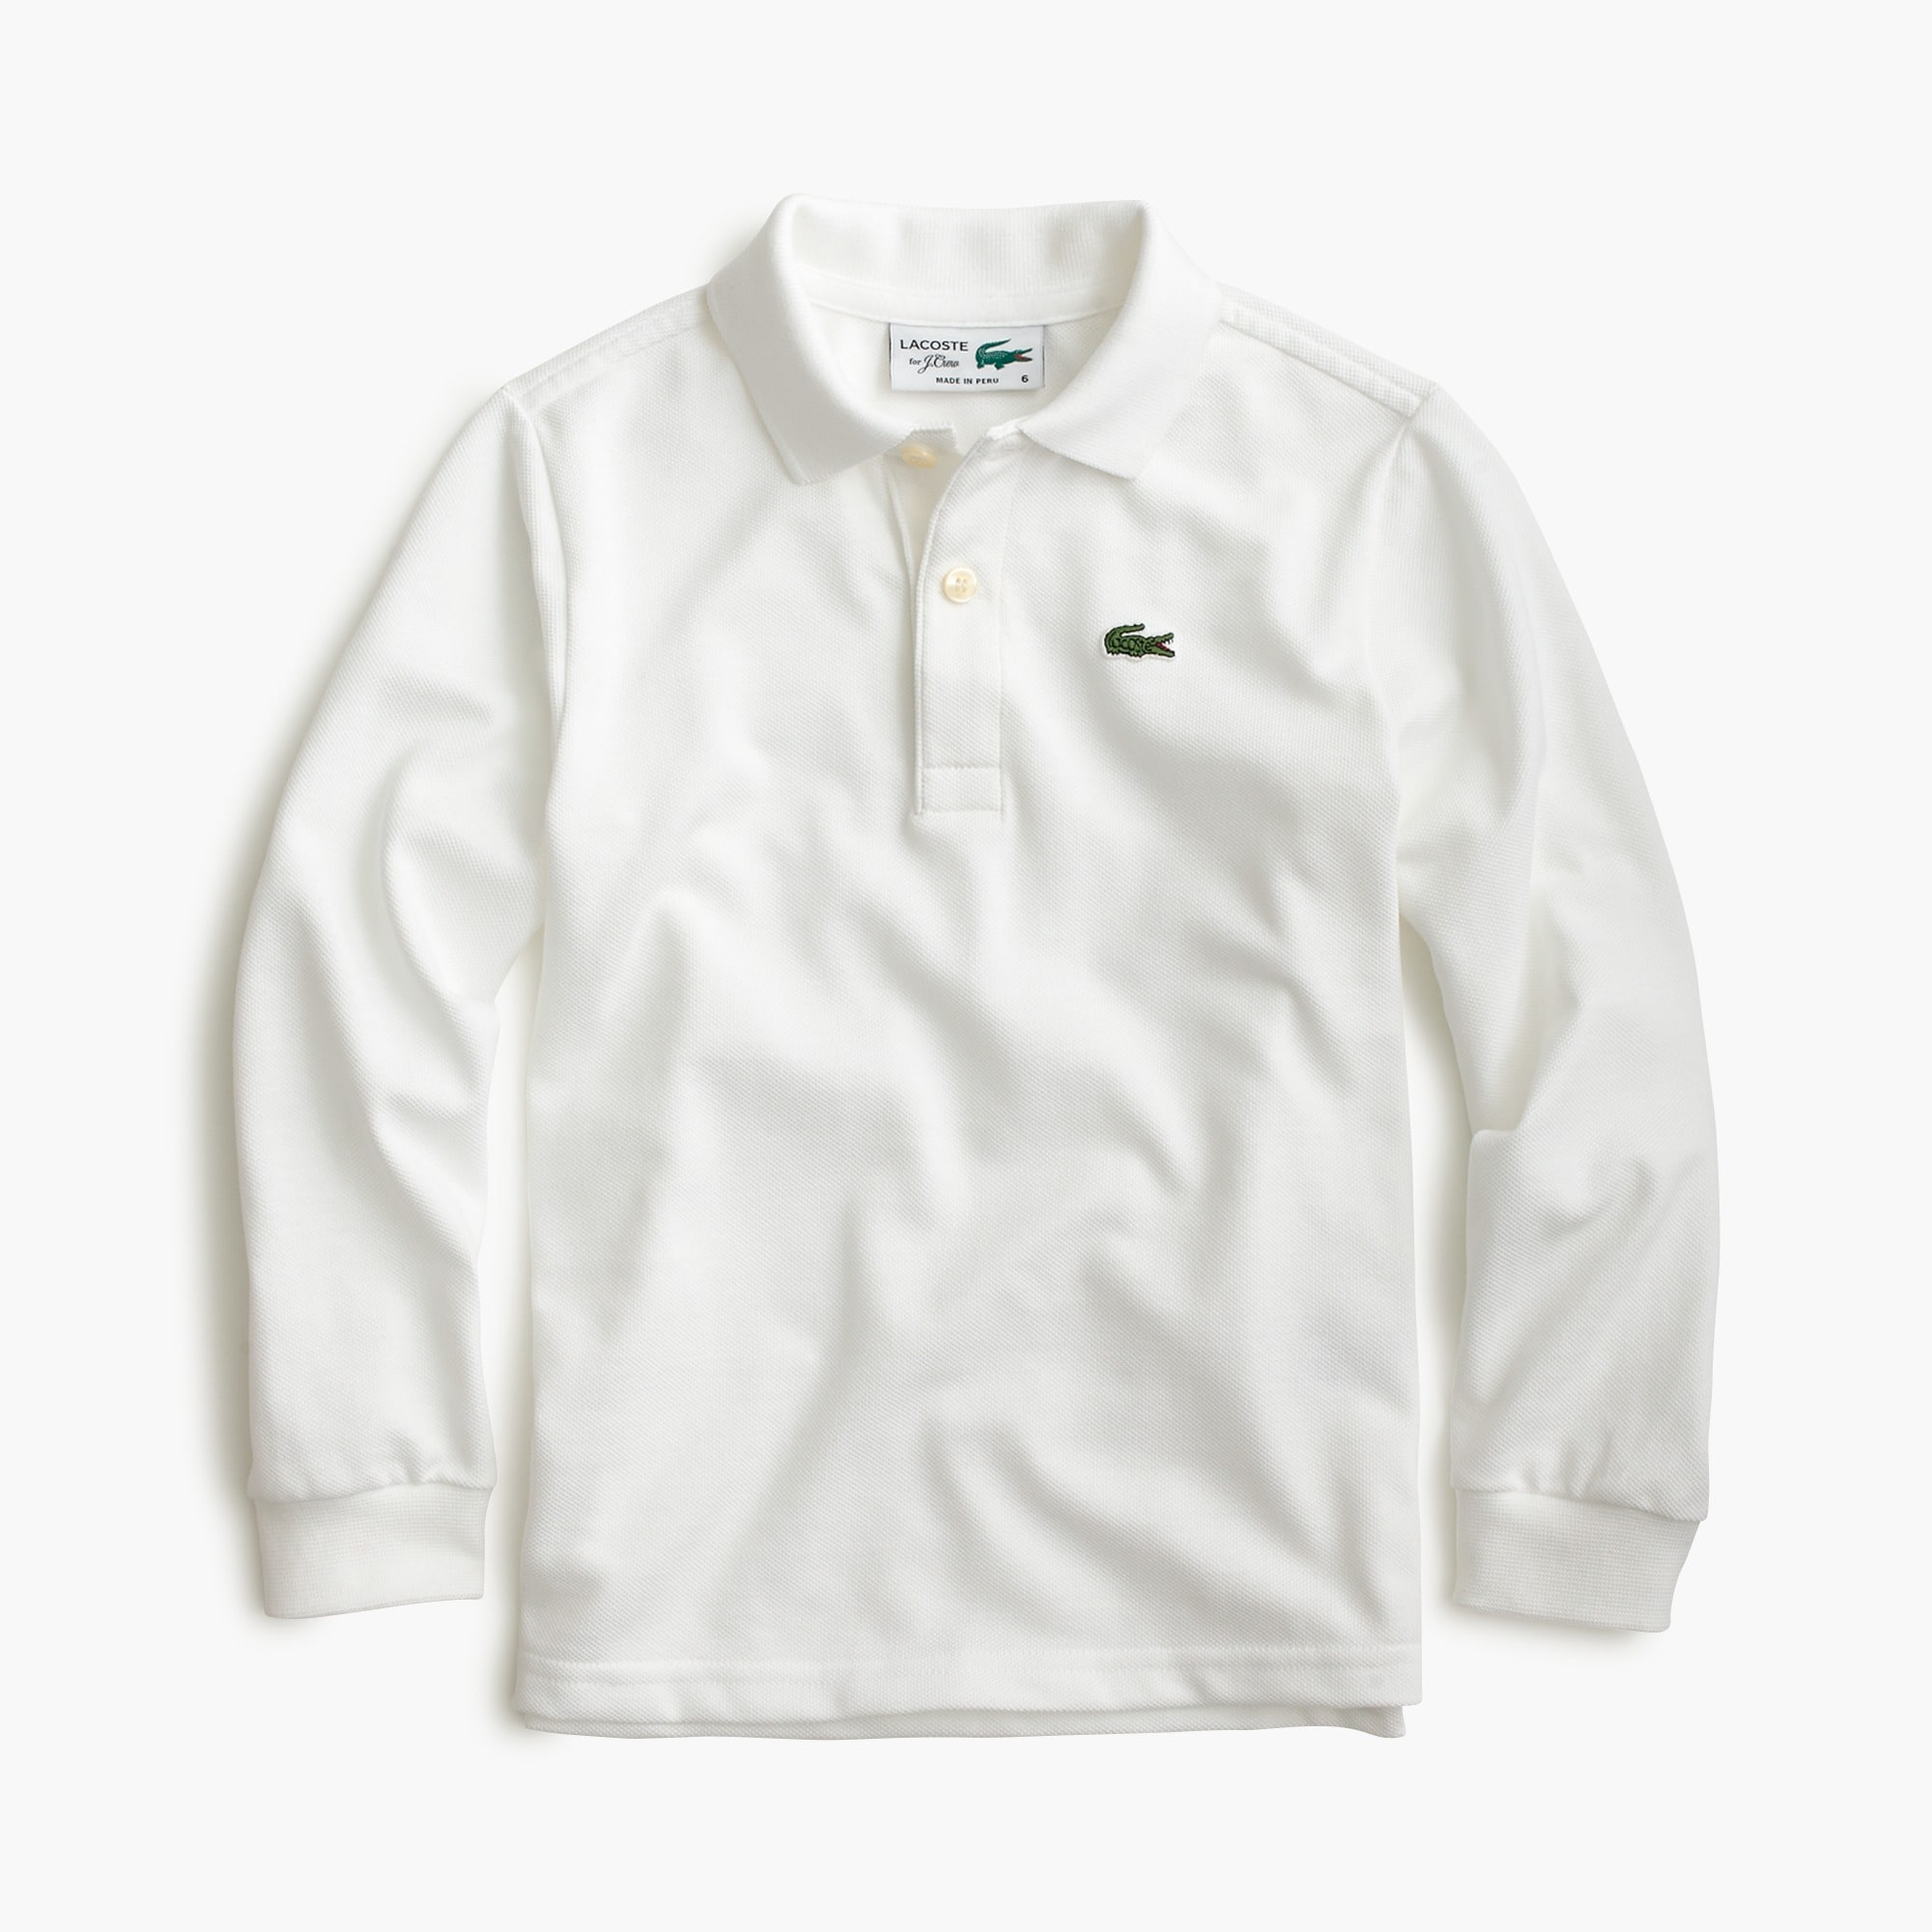 Kids' Lacoste® for J.Crew long-sleeve polo shirt girl j.crew in good company c